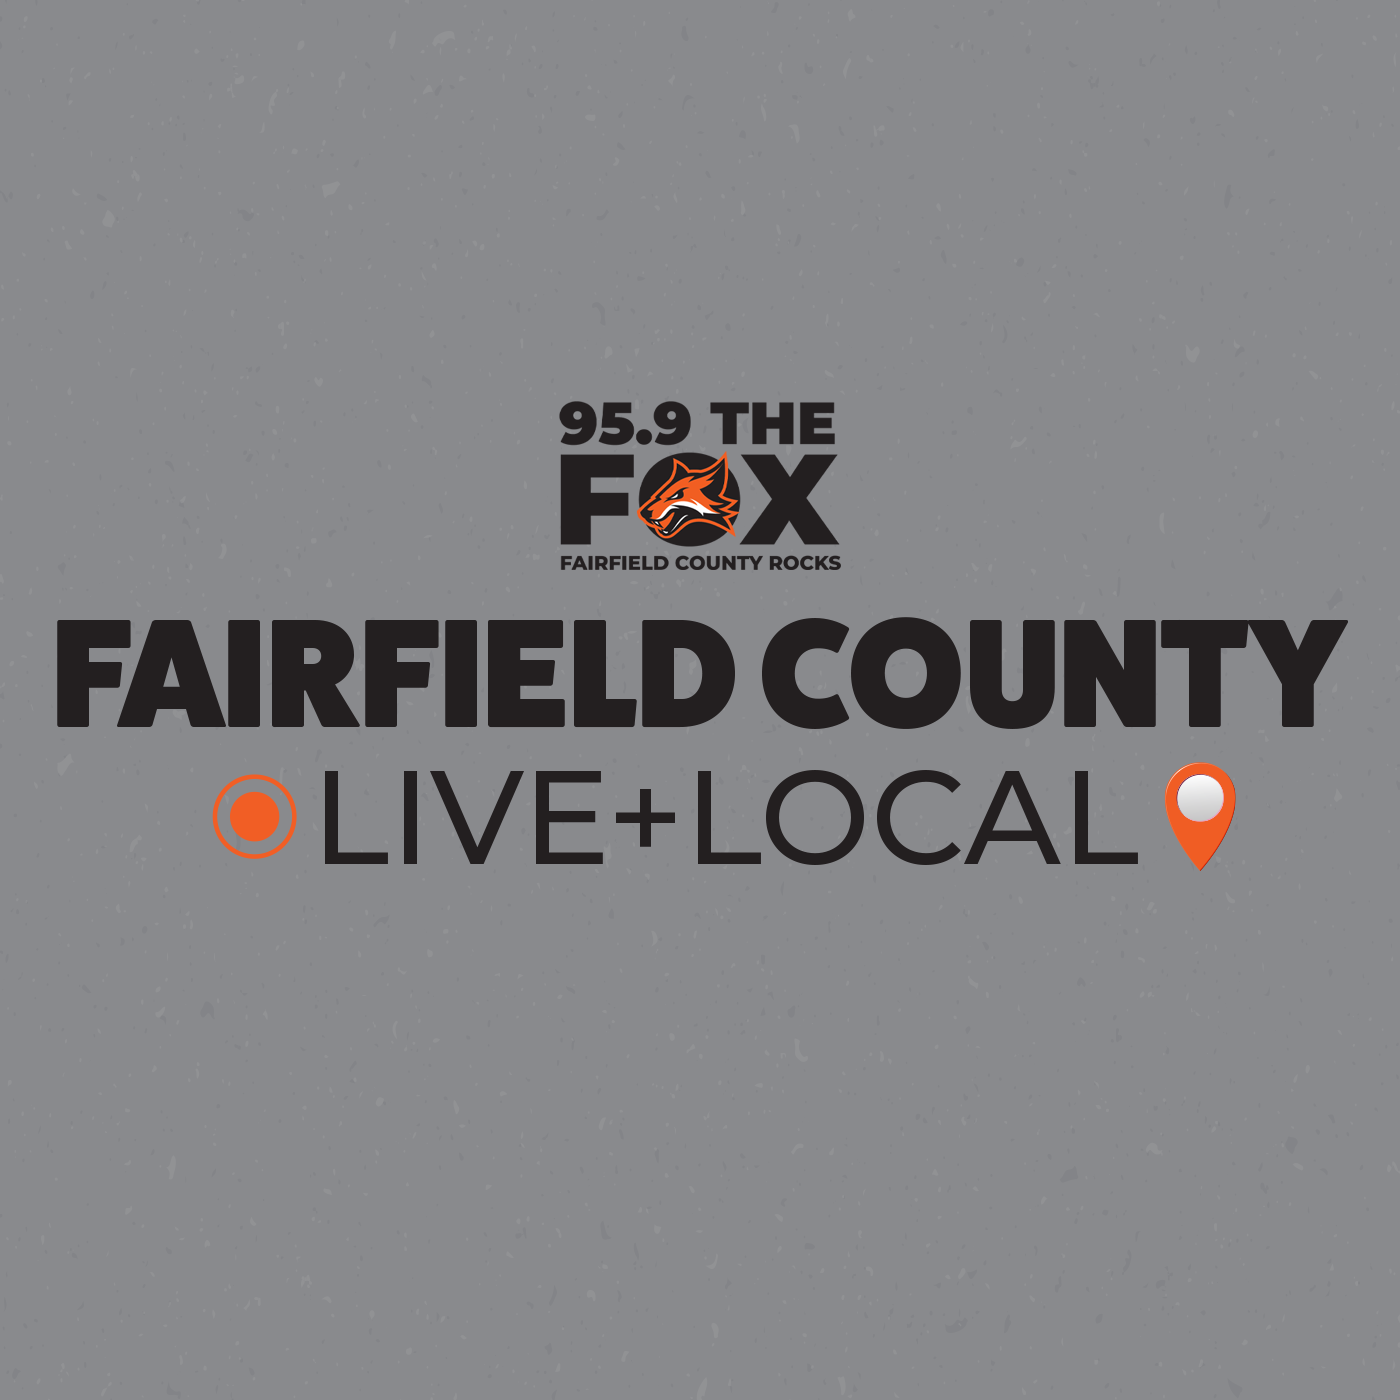 West End Blend on Fairfield County: Live and Local!